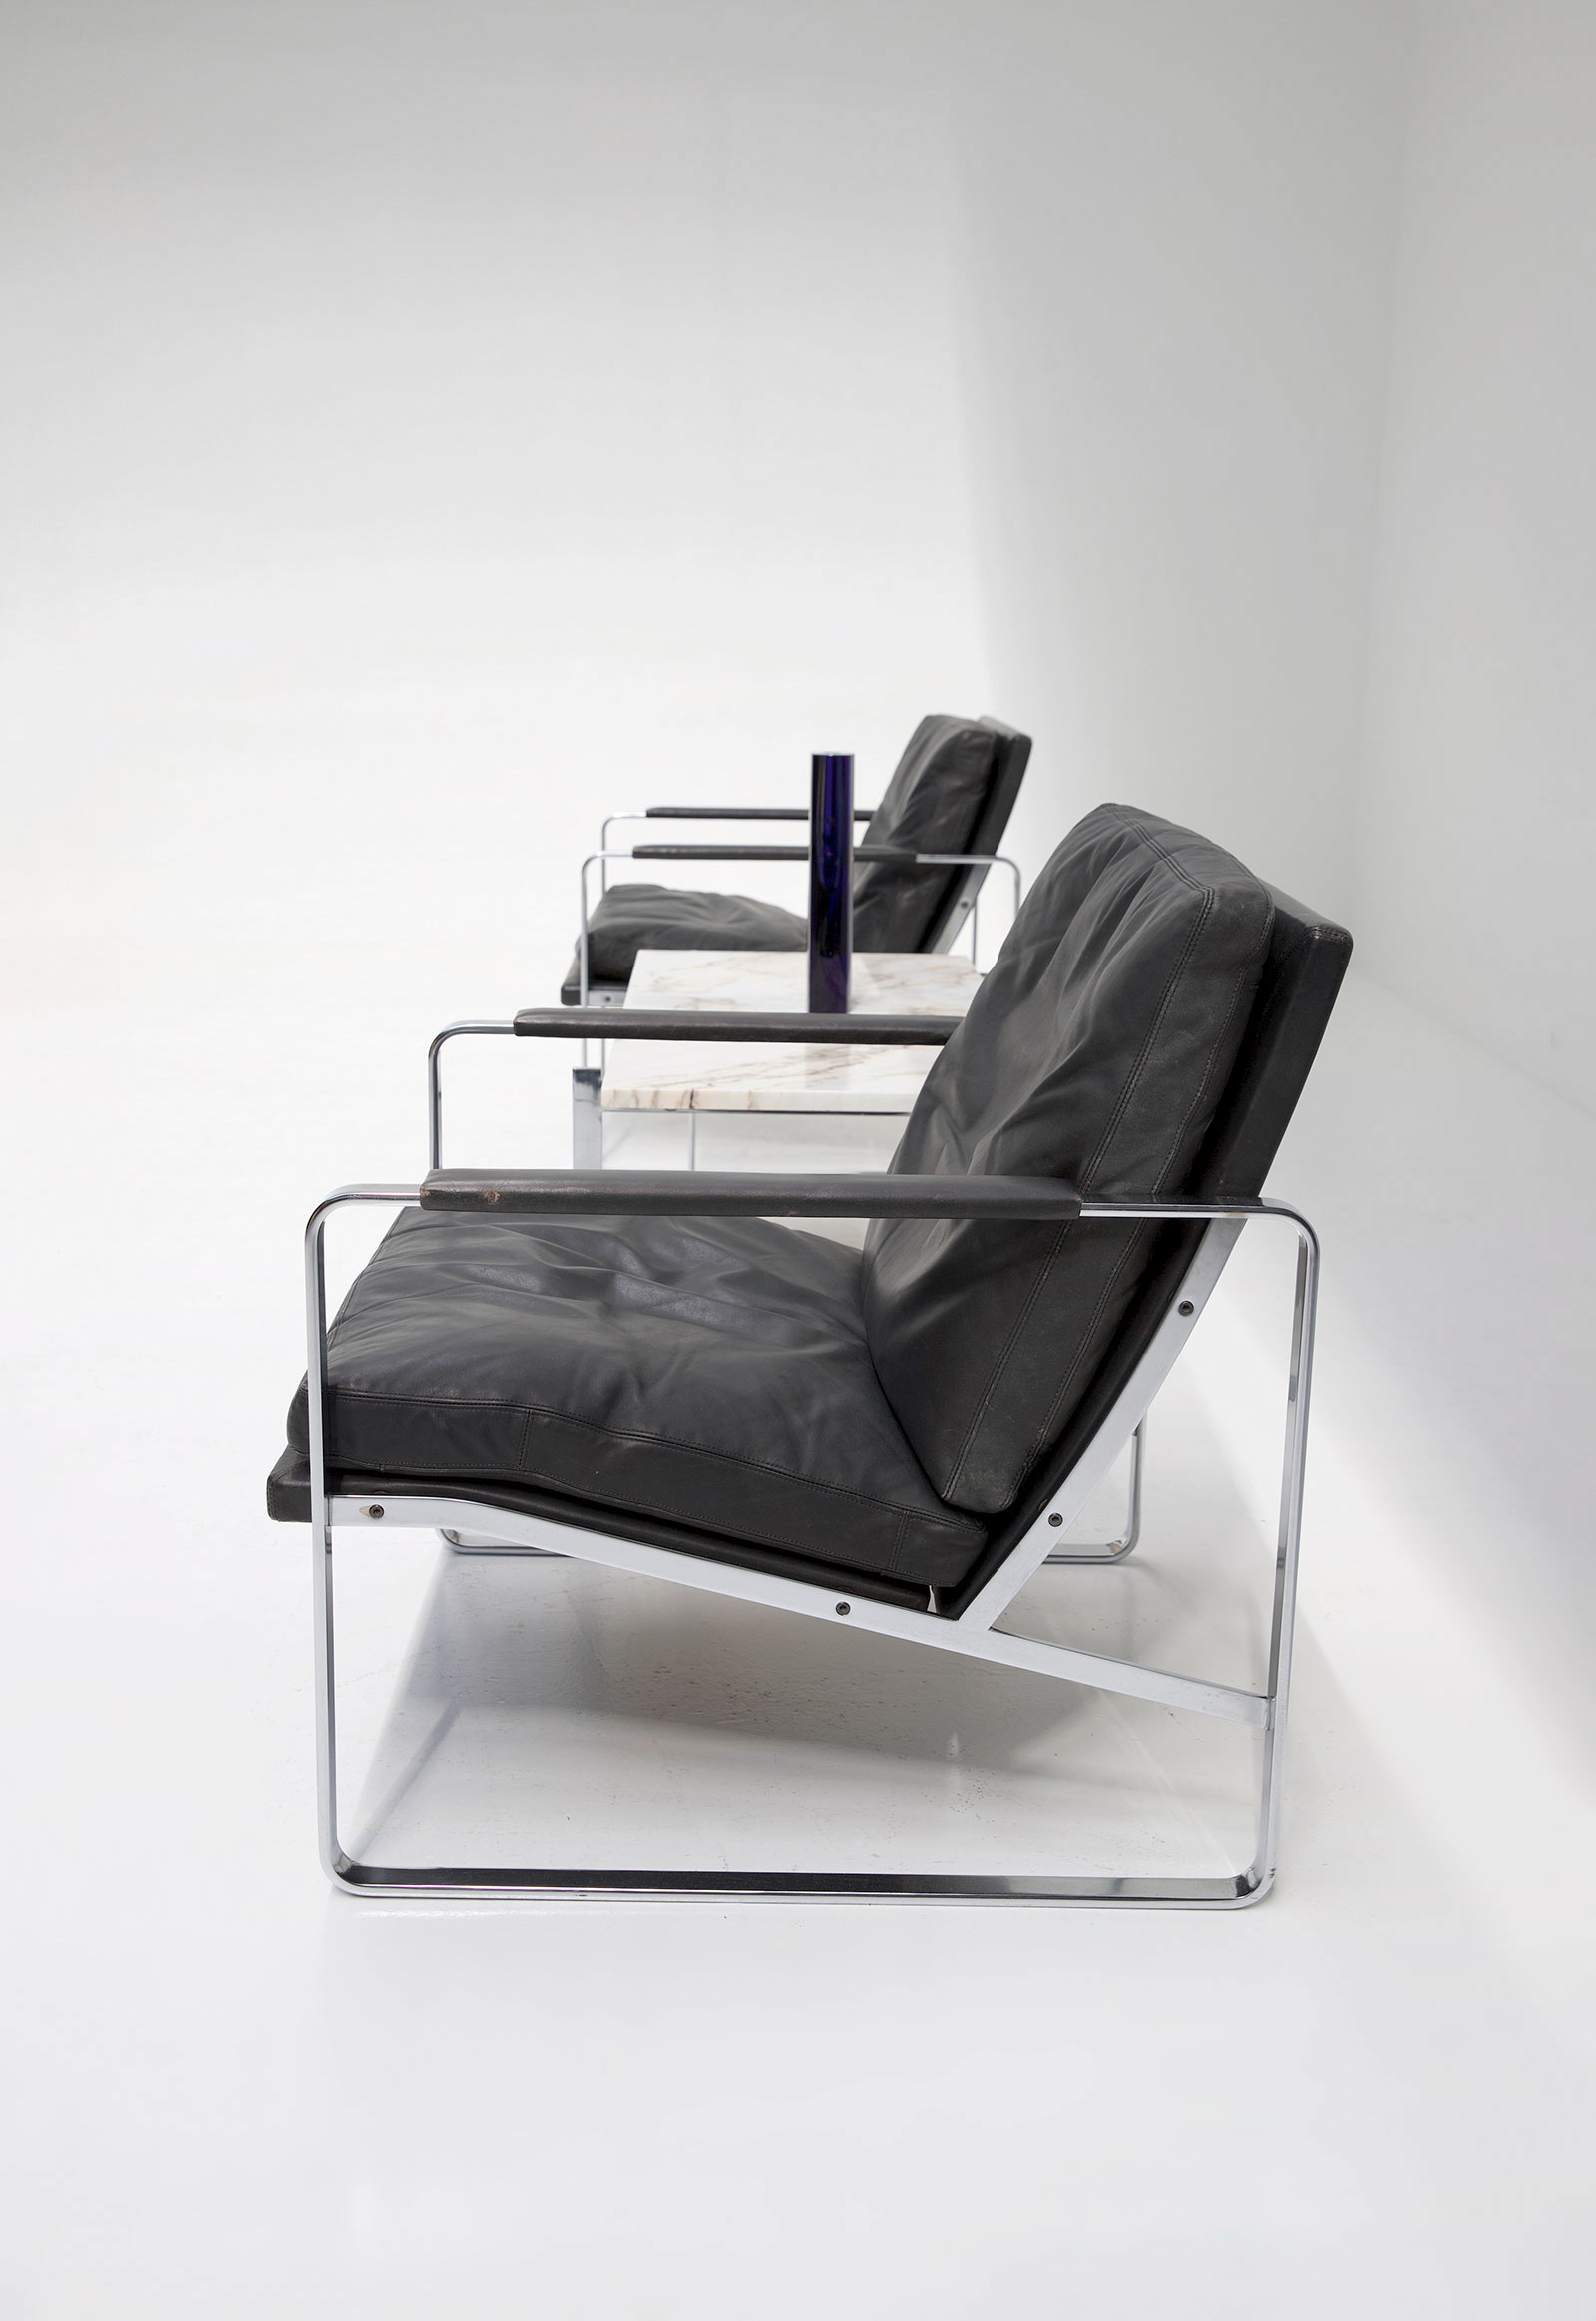 Pair of armchairs designed by Preben Fabricius for Walter Knoll